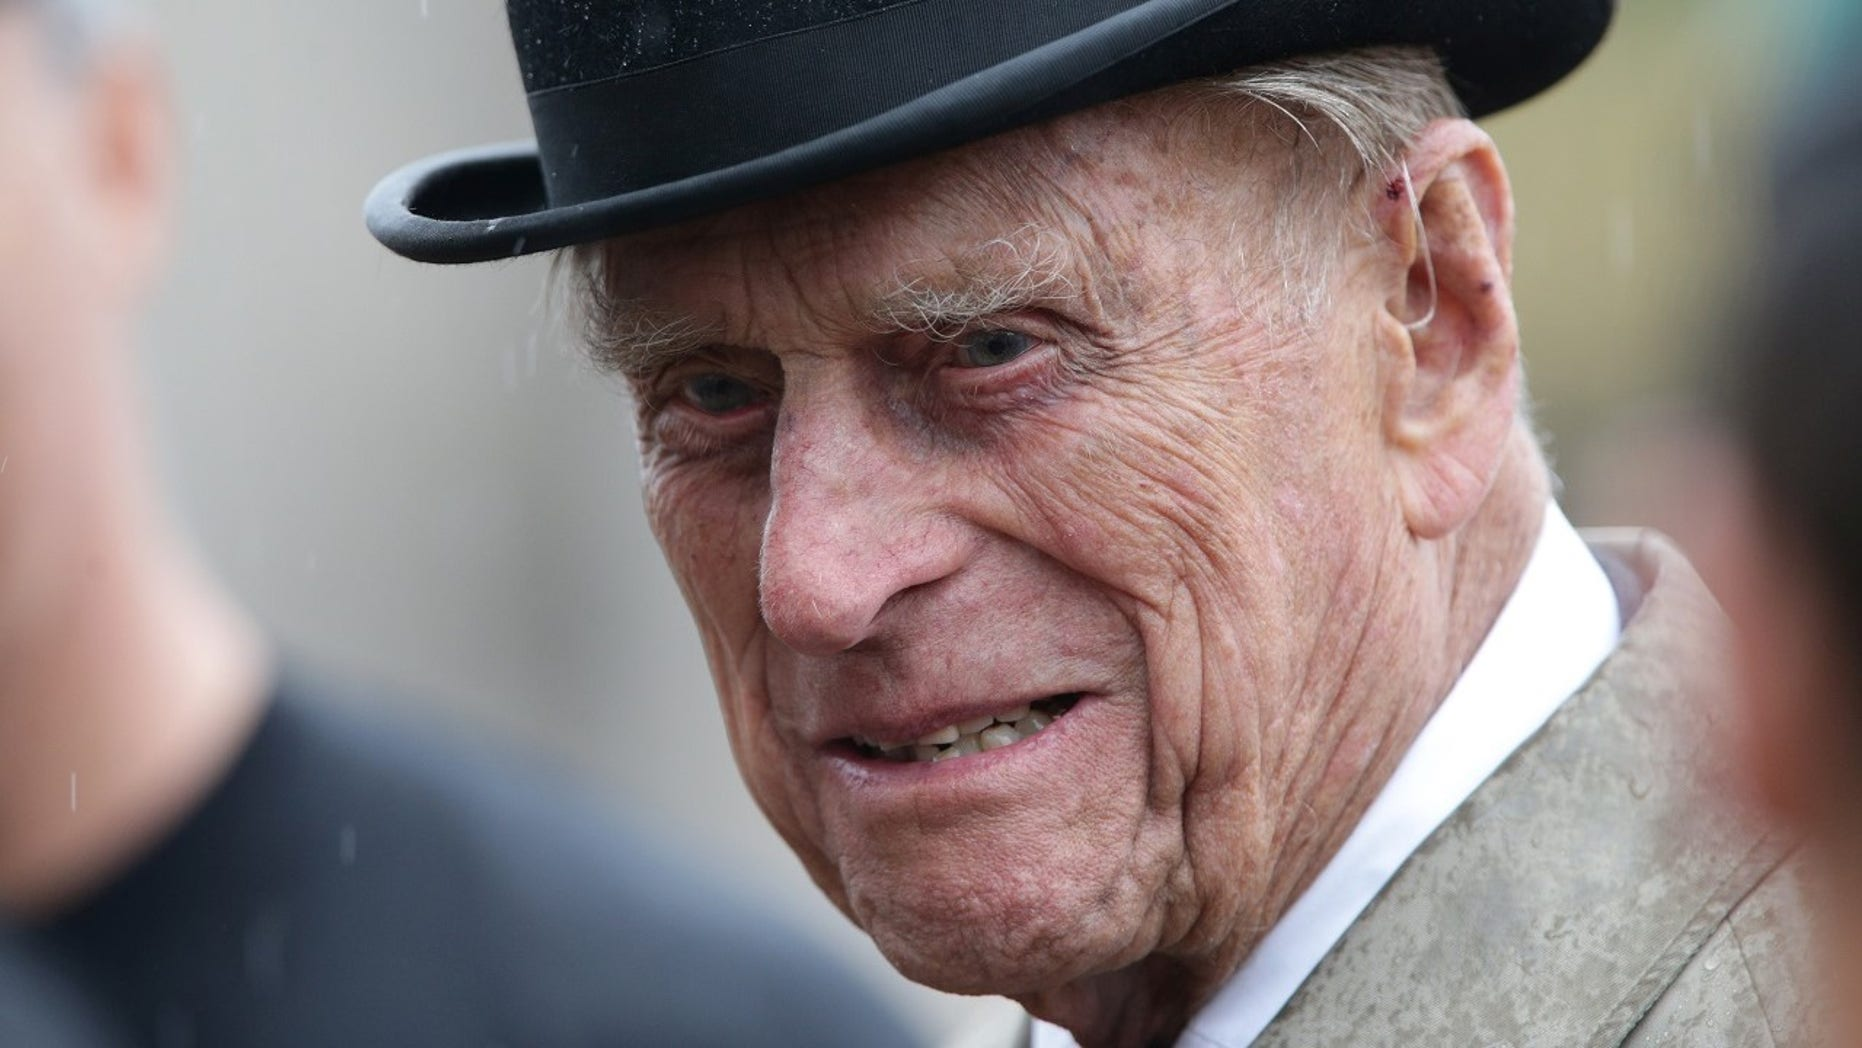 Prince Philip was admitted to a London hospital on Tuesday for a scheduled hip surgery.